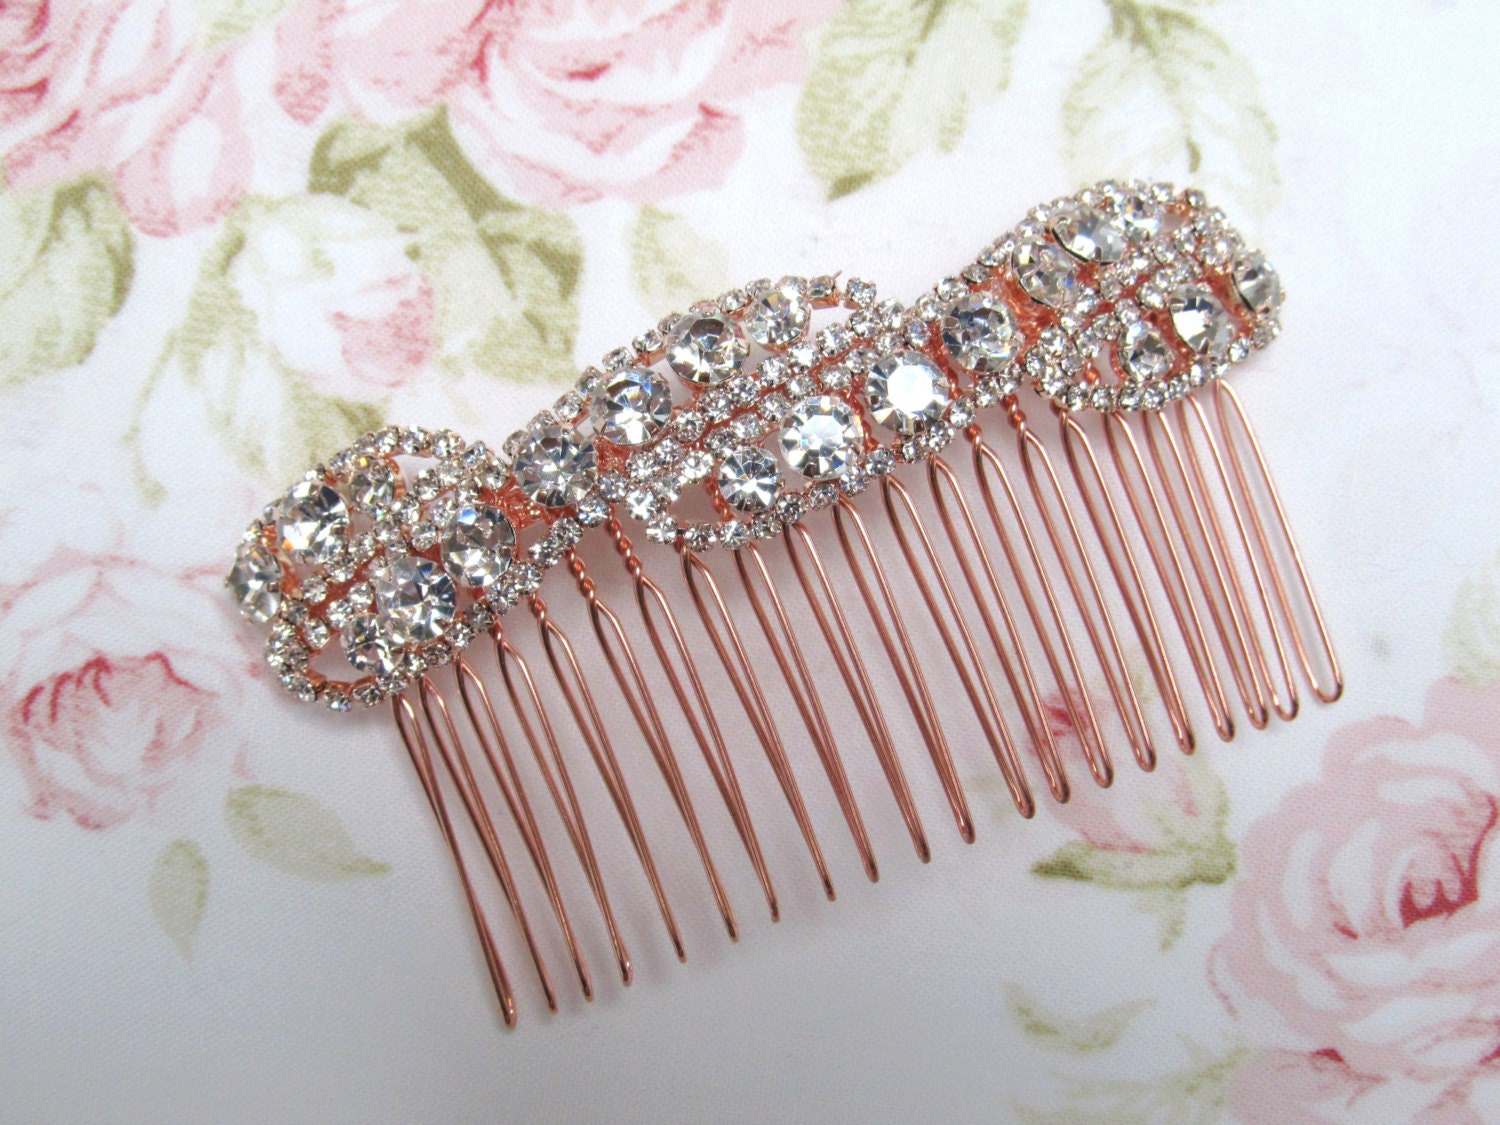 Rose Gold Bridal Hair Comb,Rhinestone Wedding Hair Comb,Bridal Hair Accessories,Wedding Accessories,Decorative Hair Comb,#C7